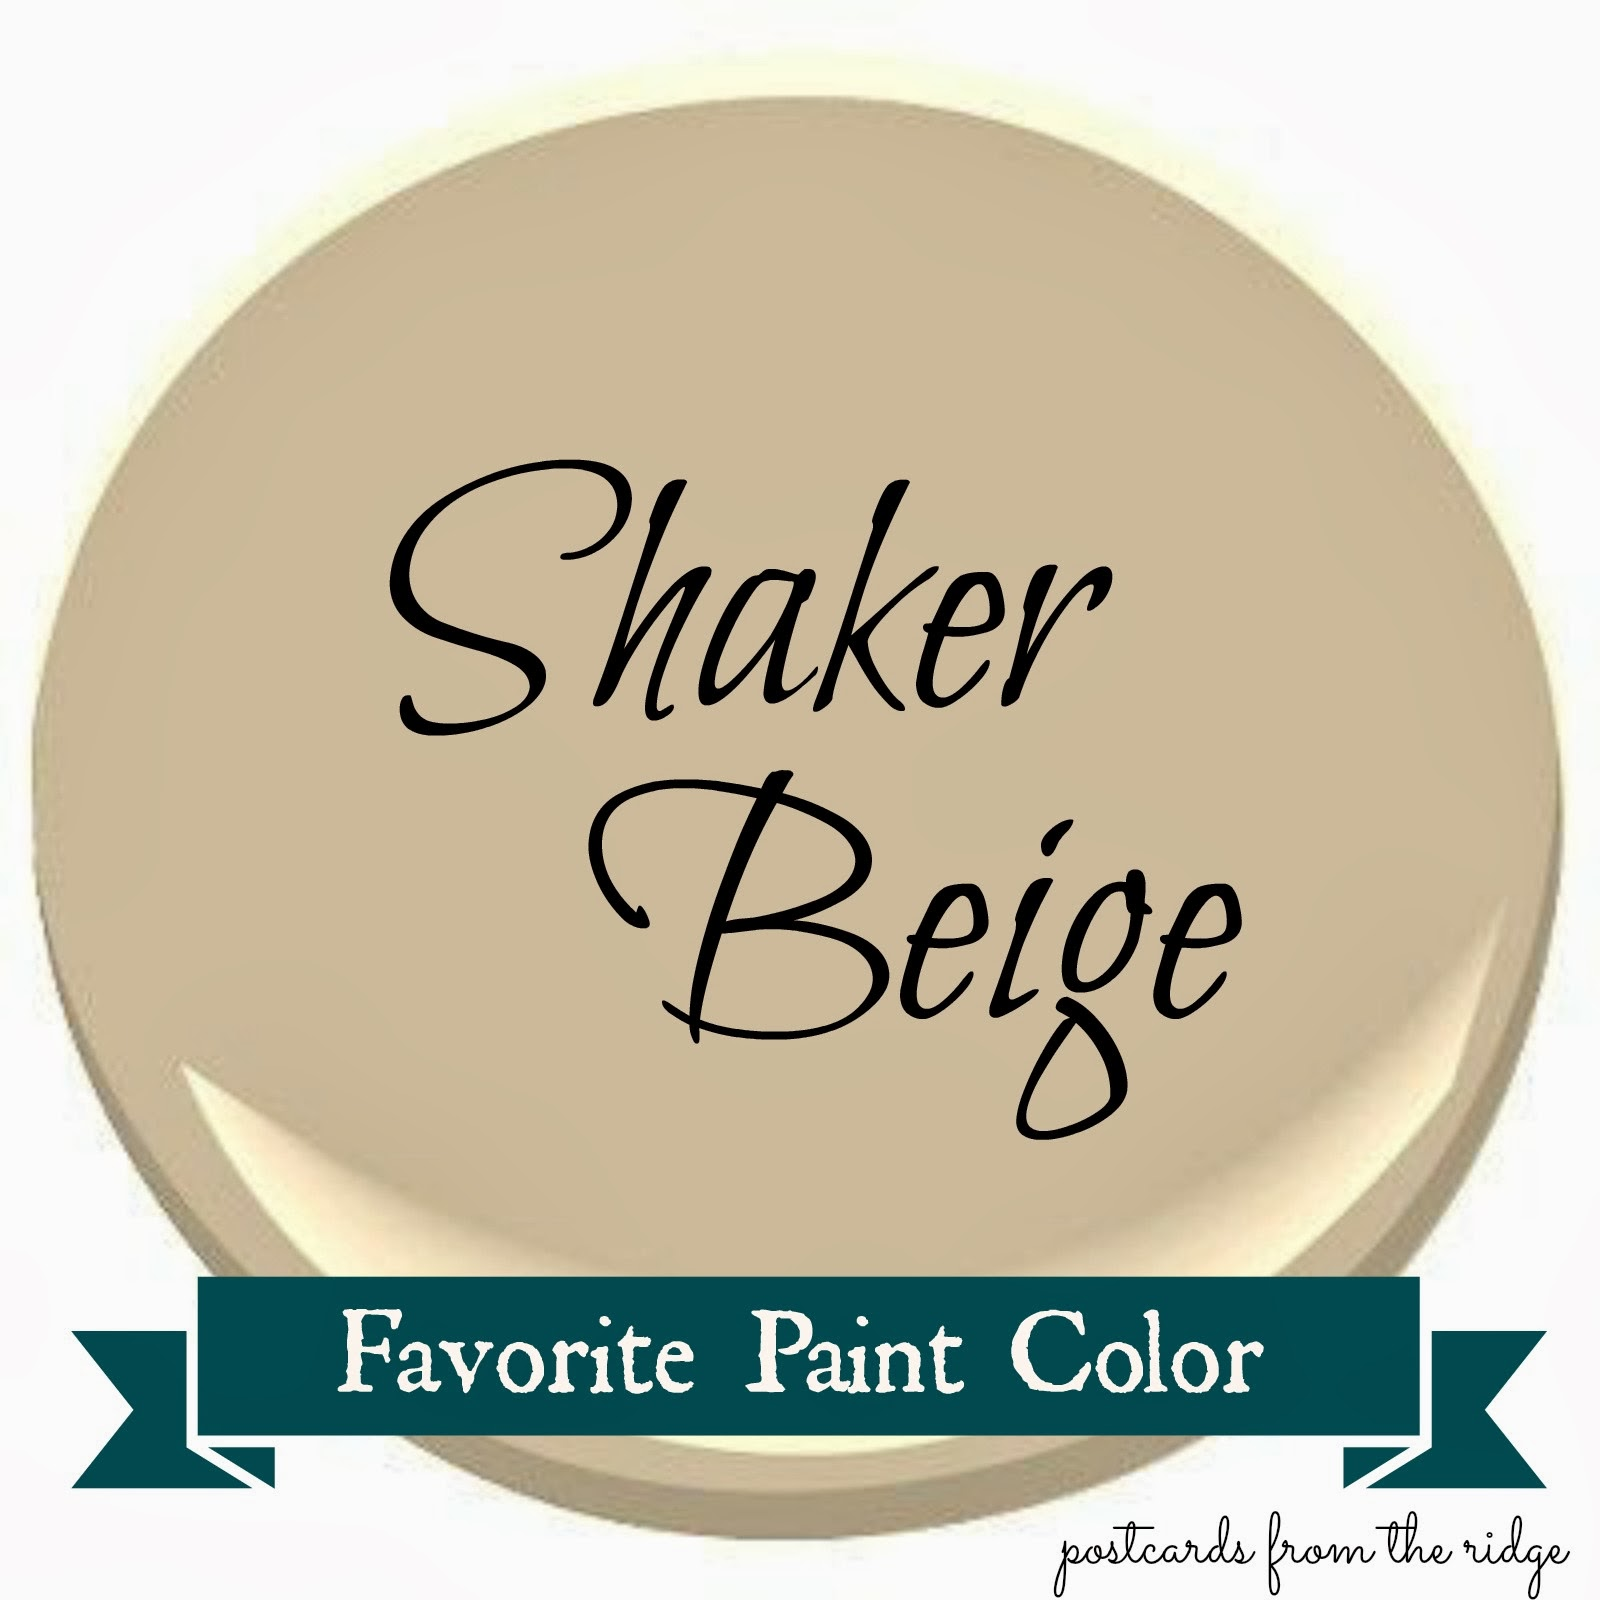 Benjamin Moore Shaker Beige Favorite Paint Color